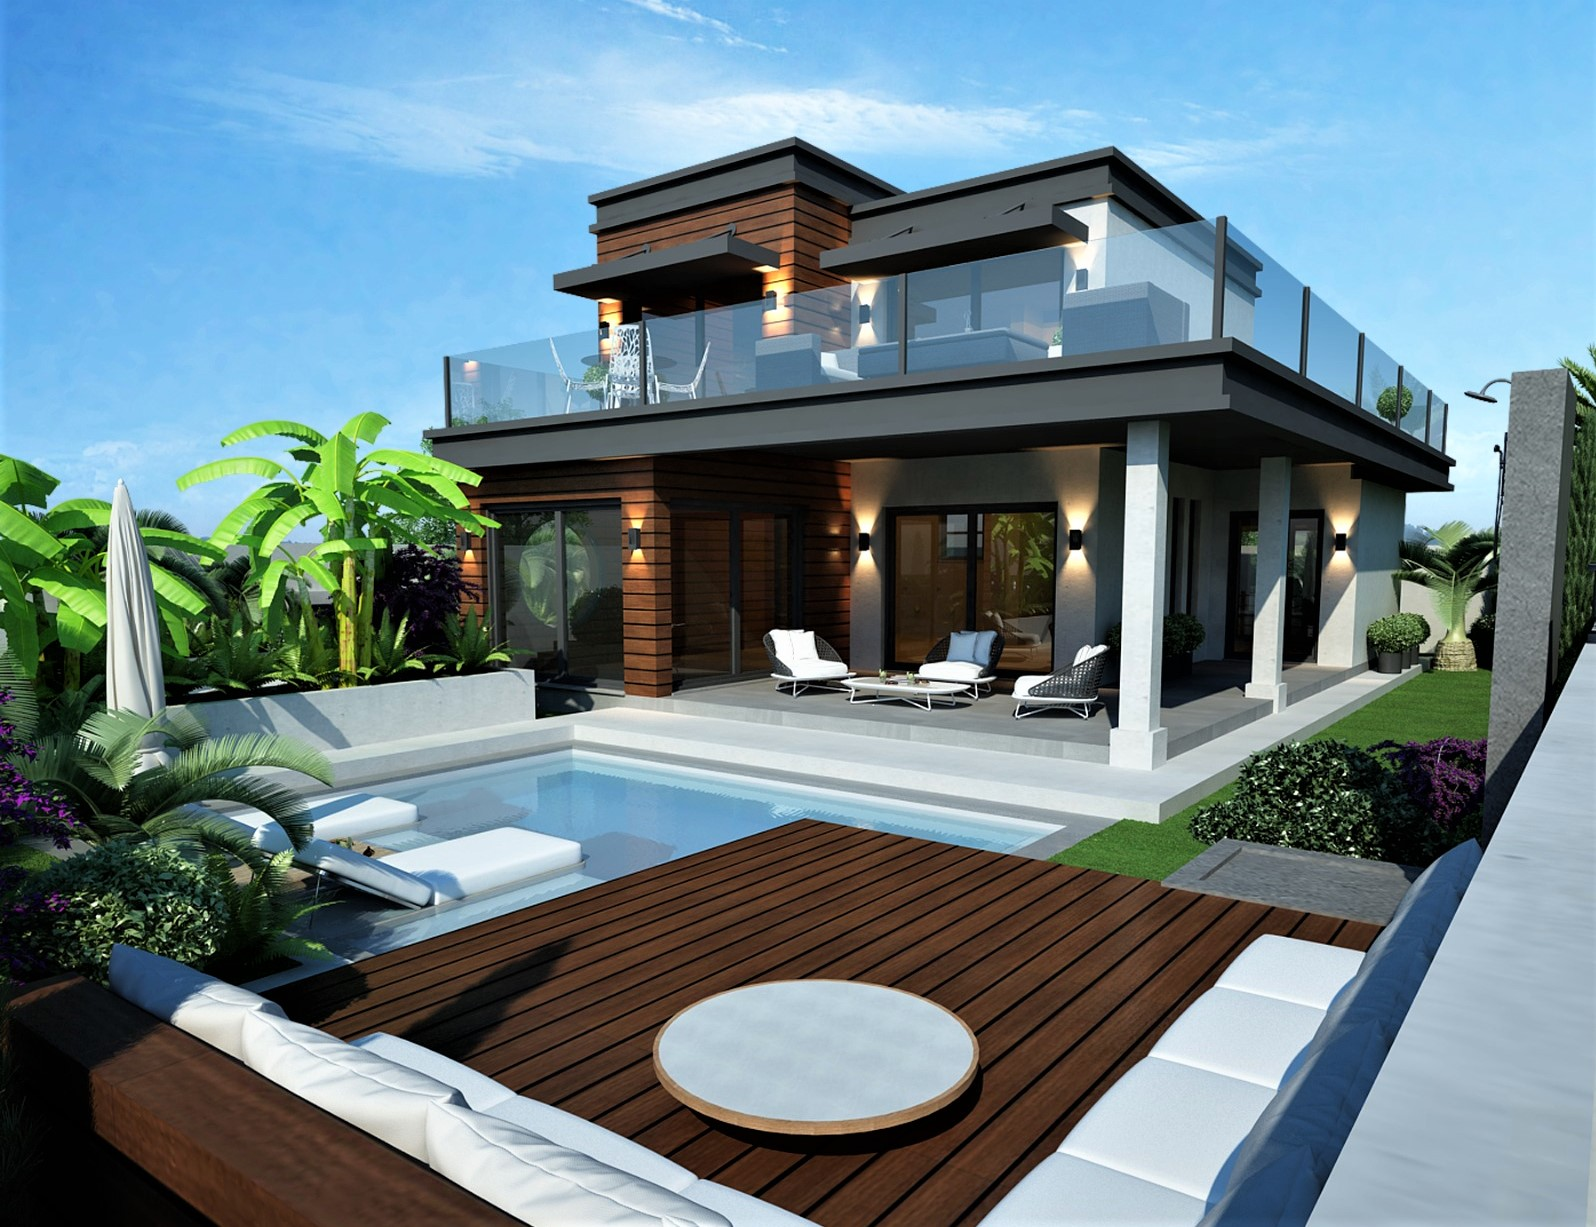 Off Plan 3 Bedroom Luxury Dublex Villa with Swimming Pool For Sale